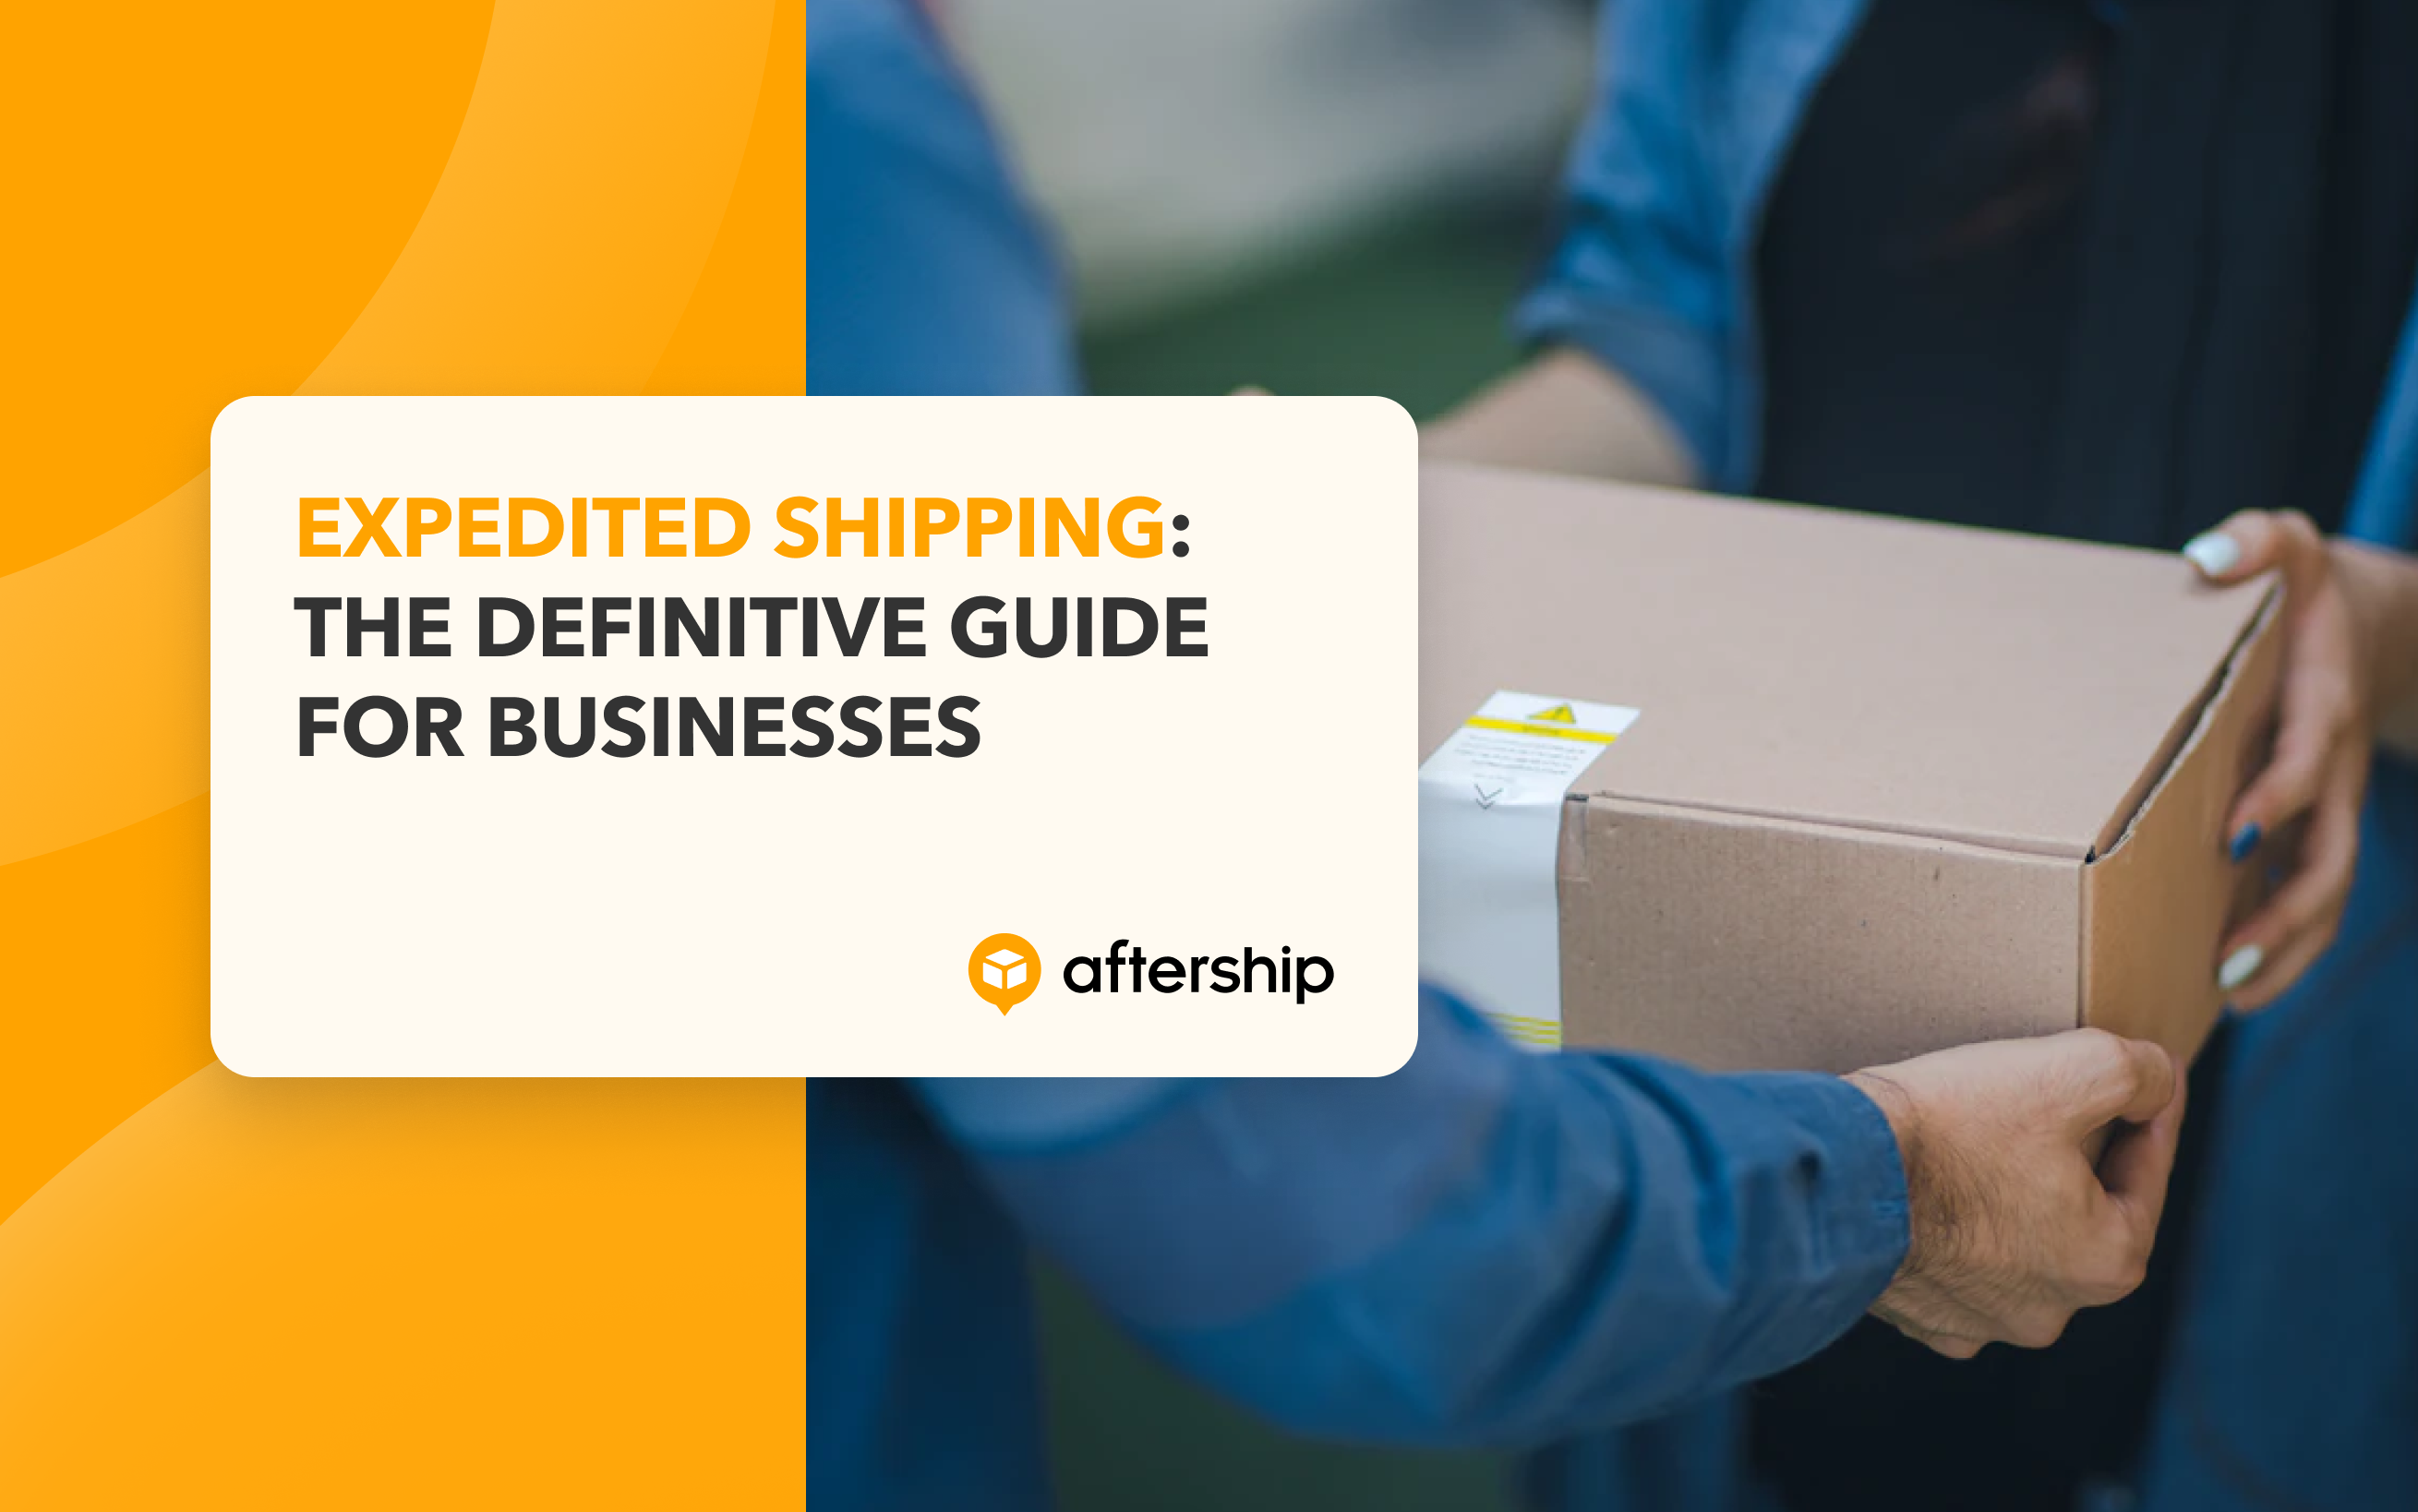 Expedited Shipping: The Definitive Guide for Businesses